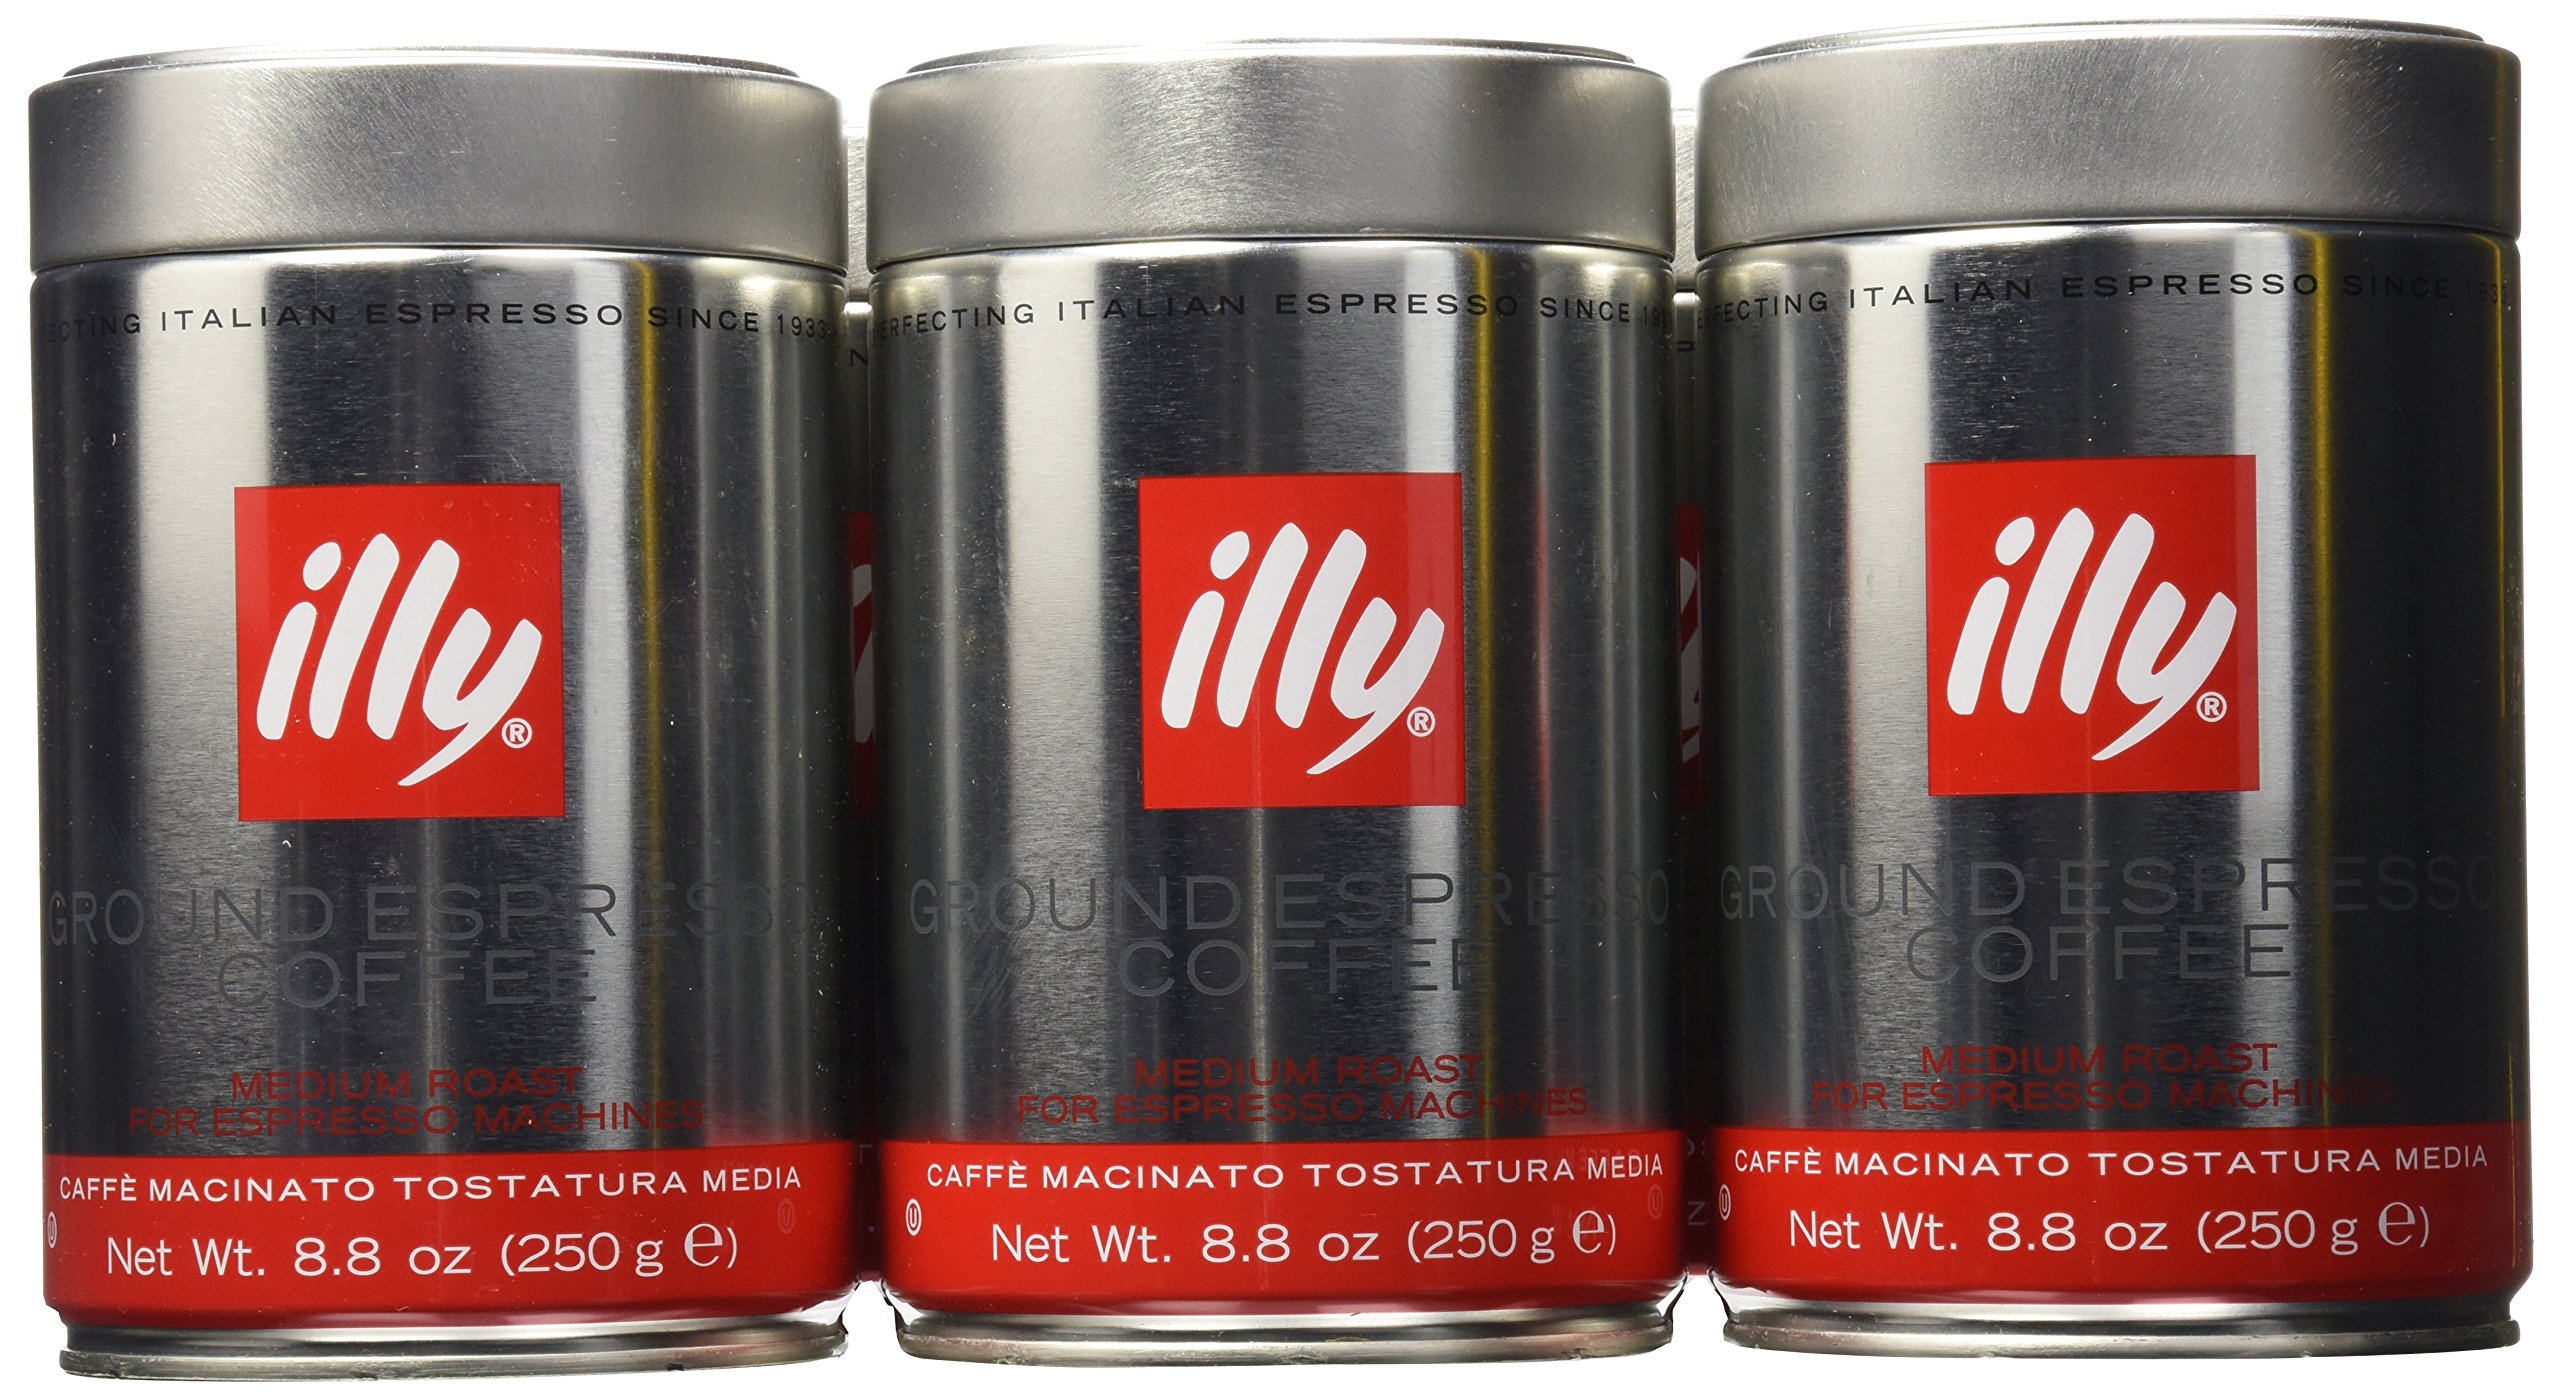 illy Caffe Normale Fine Grind (Medium Roast, Red Band) 8.8 coffee cans (Pack of 6) by Illy